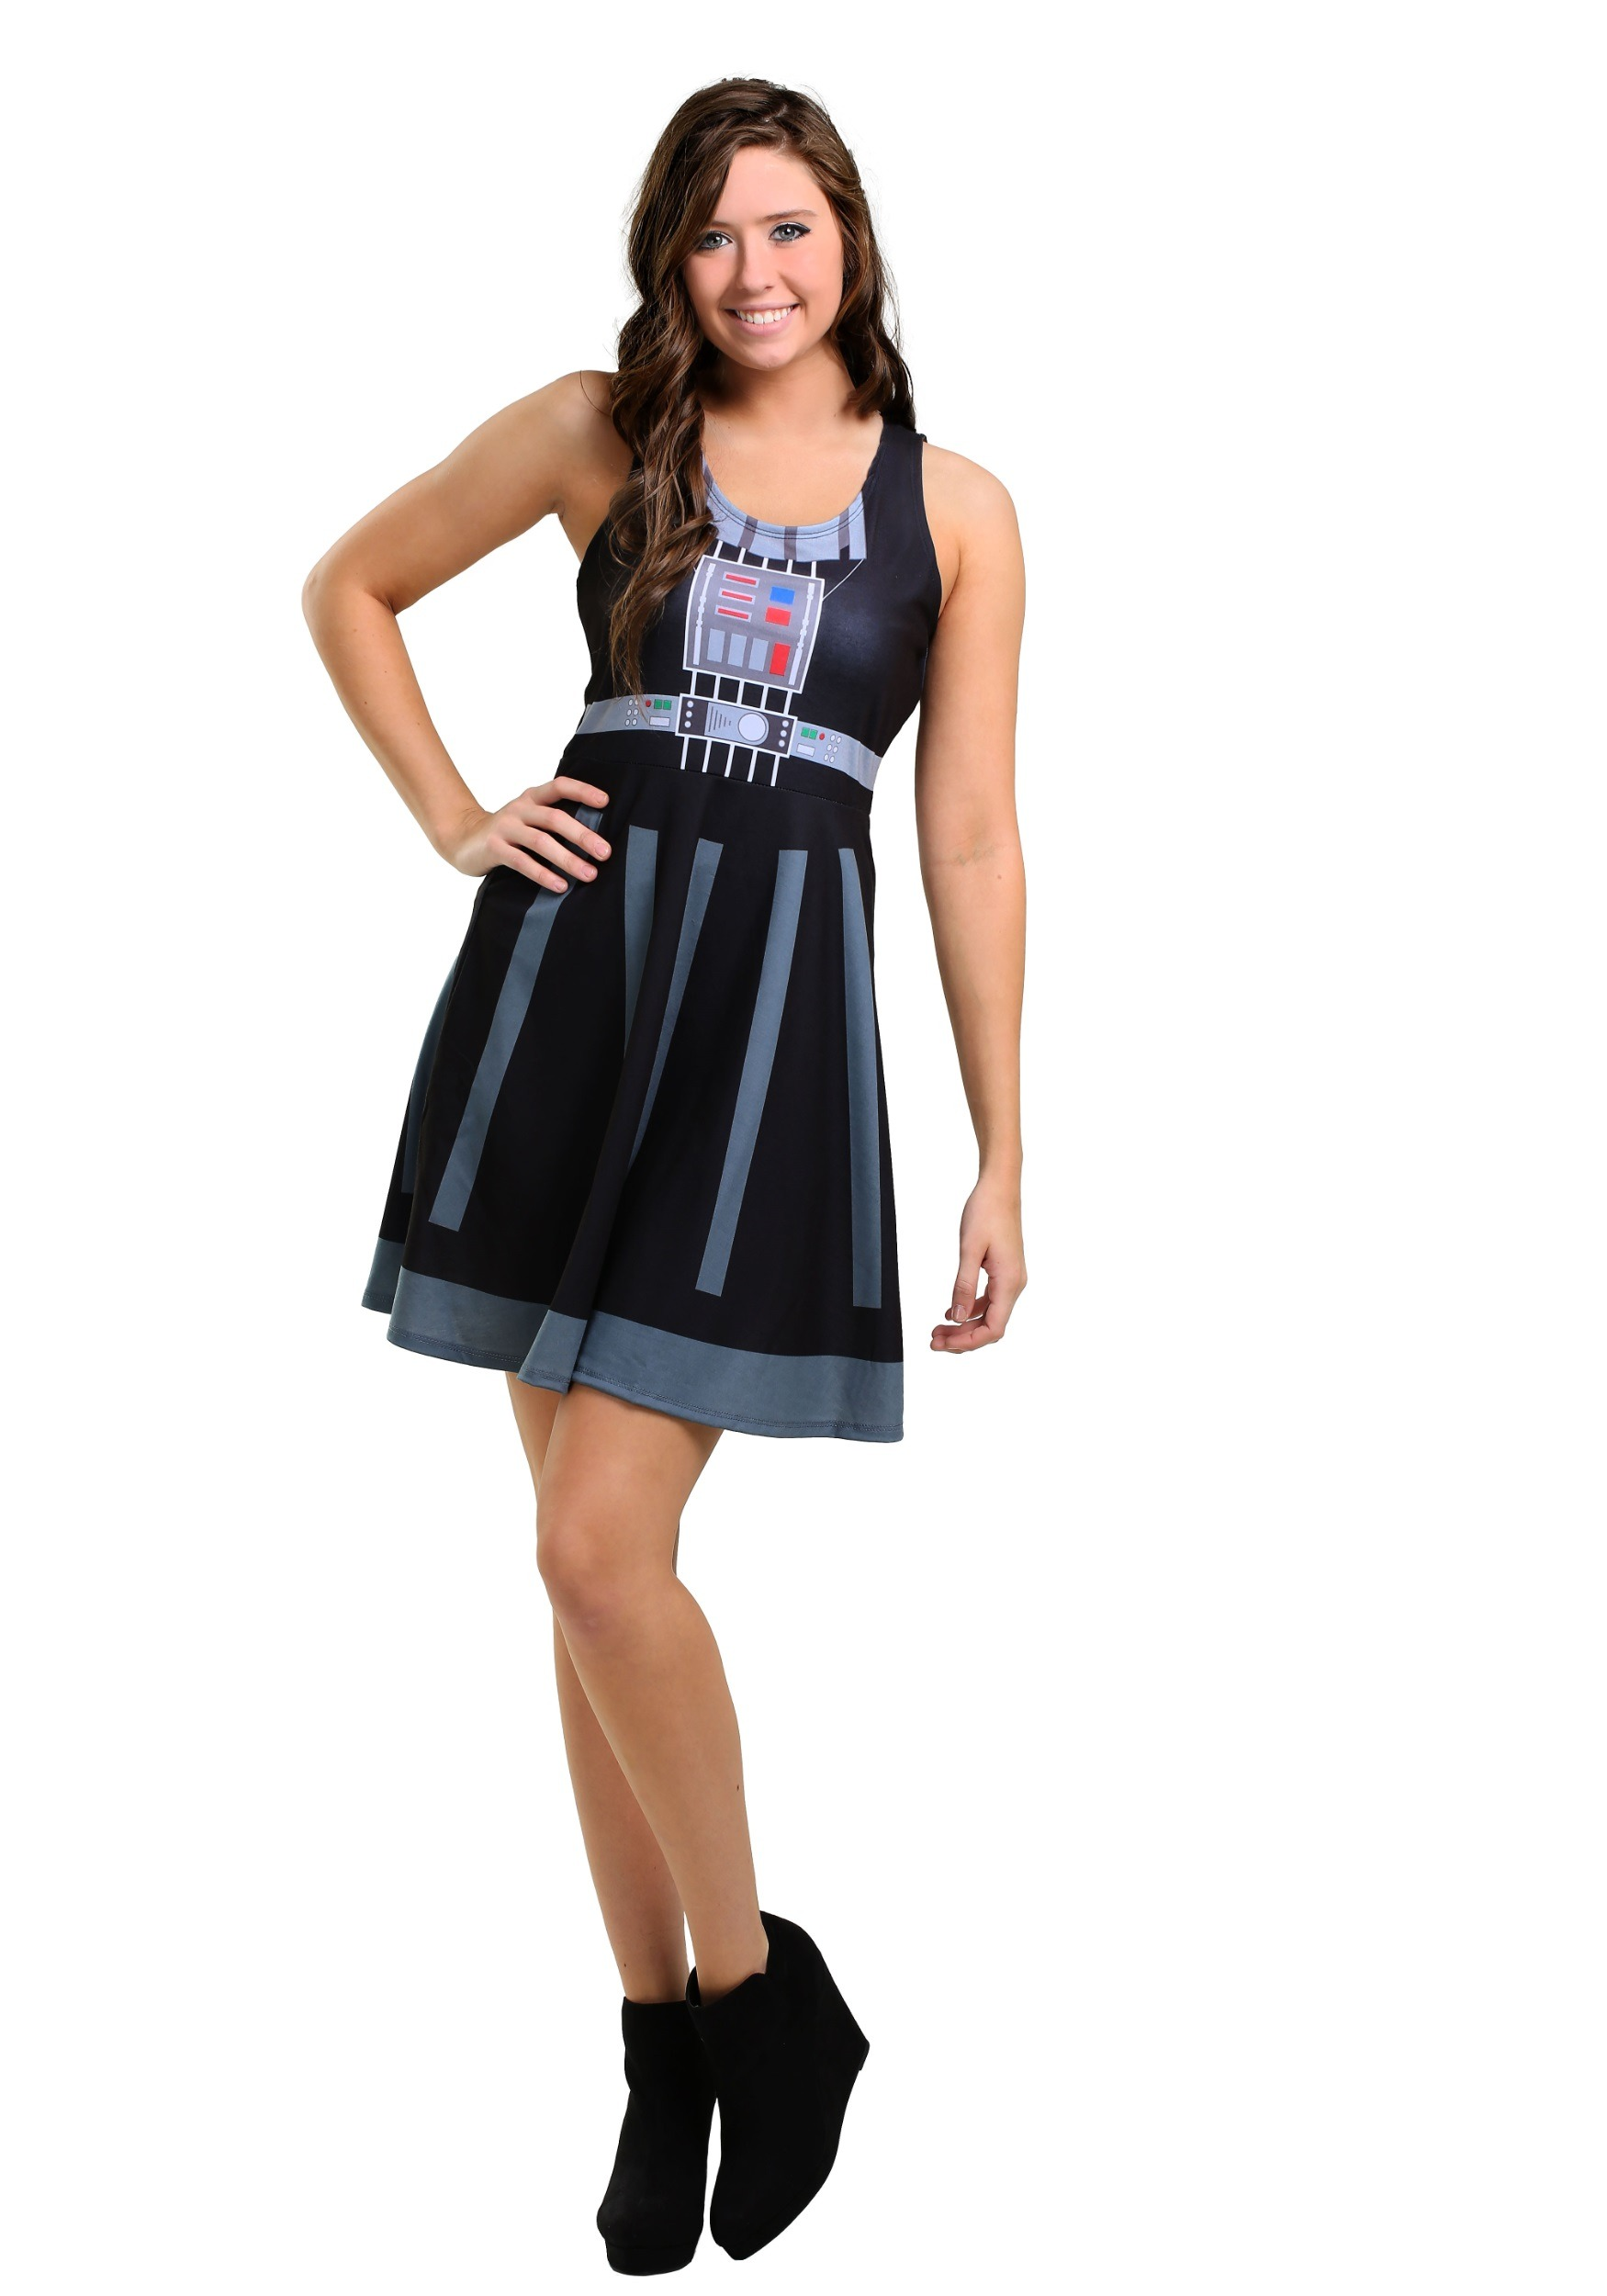 Star Wars Darth Vader A-Line Dress